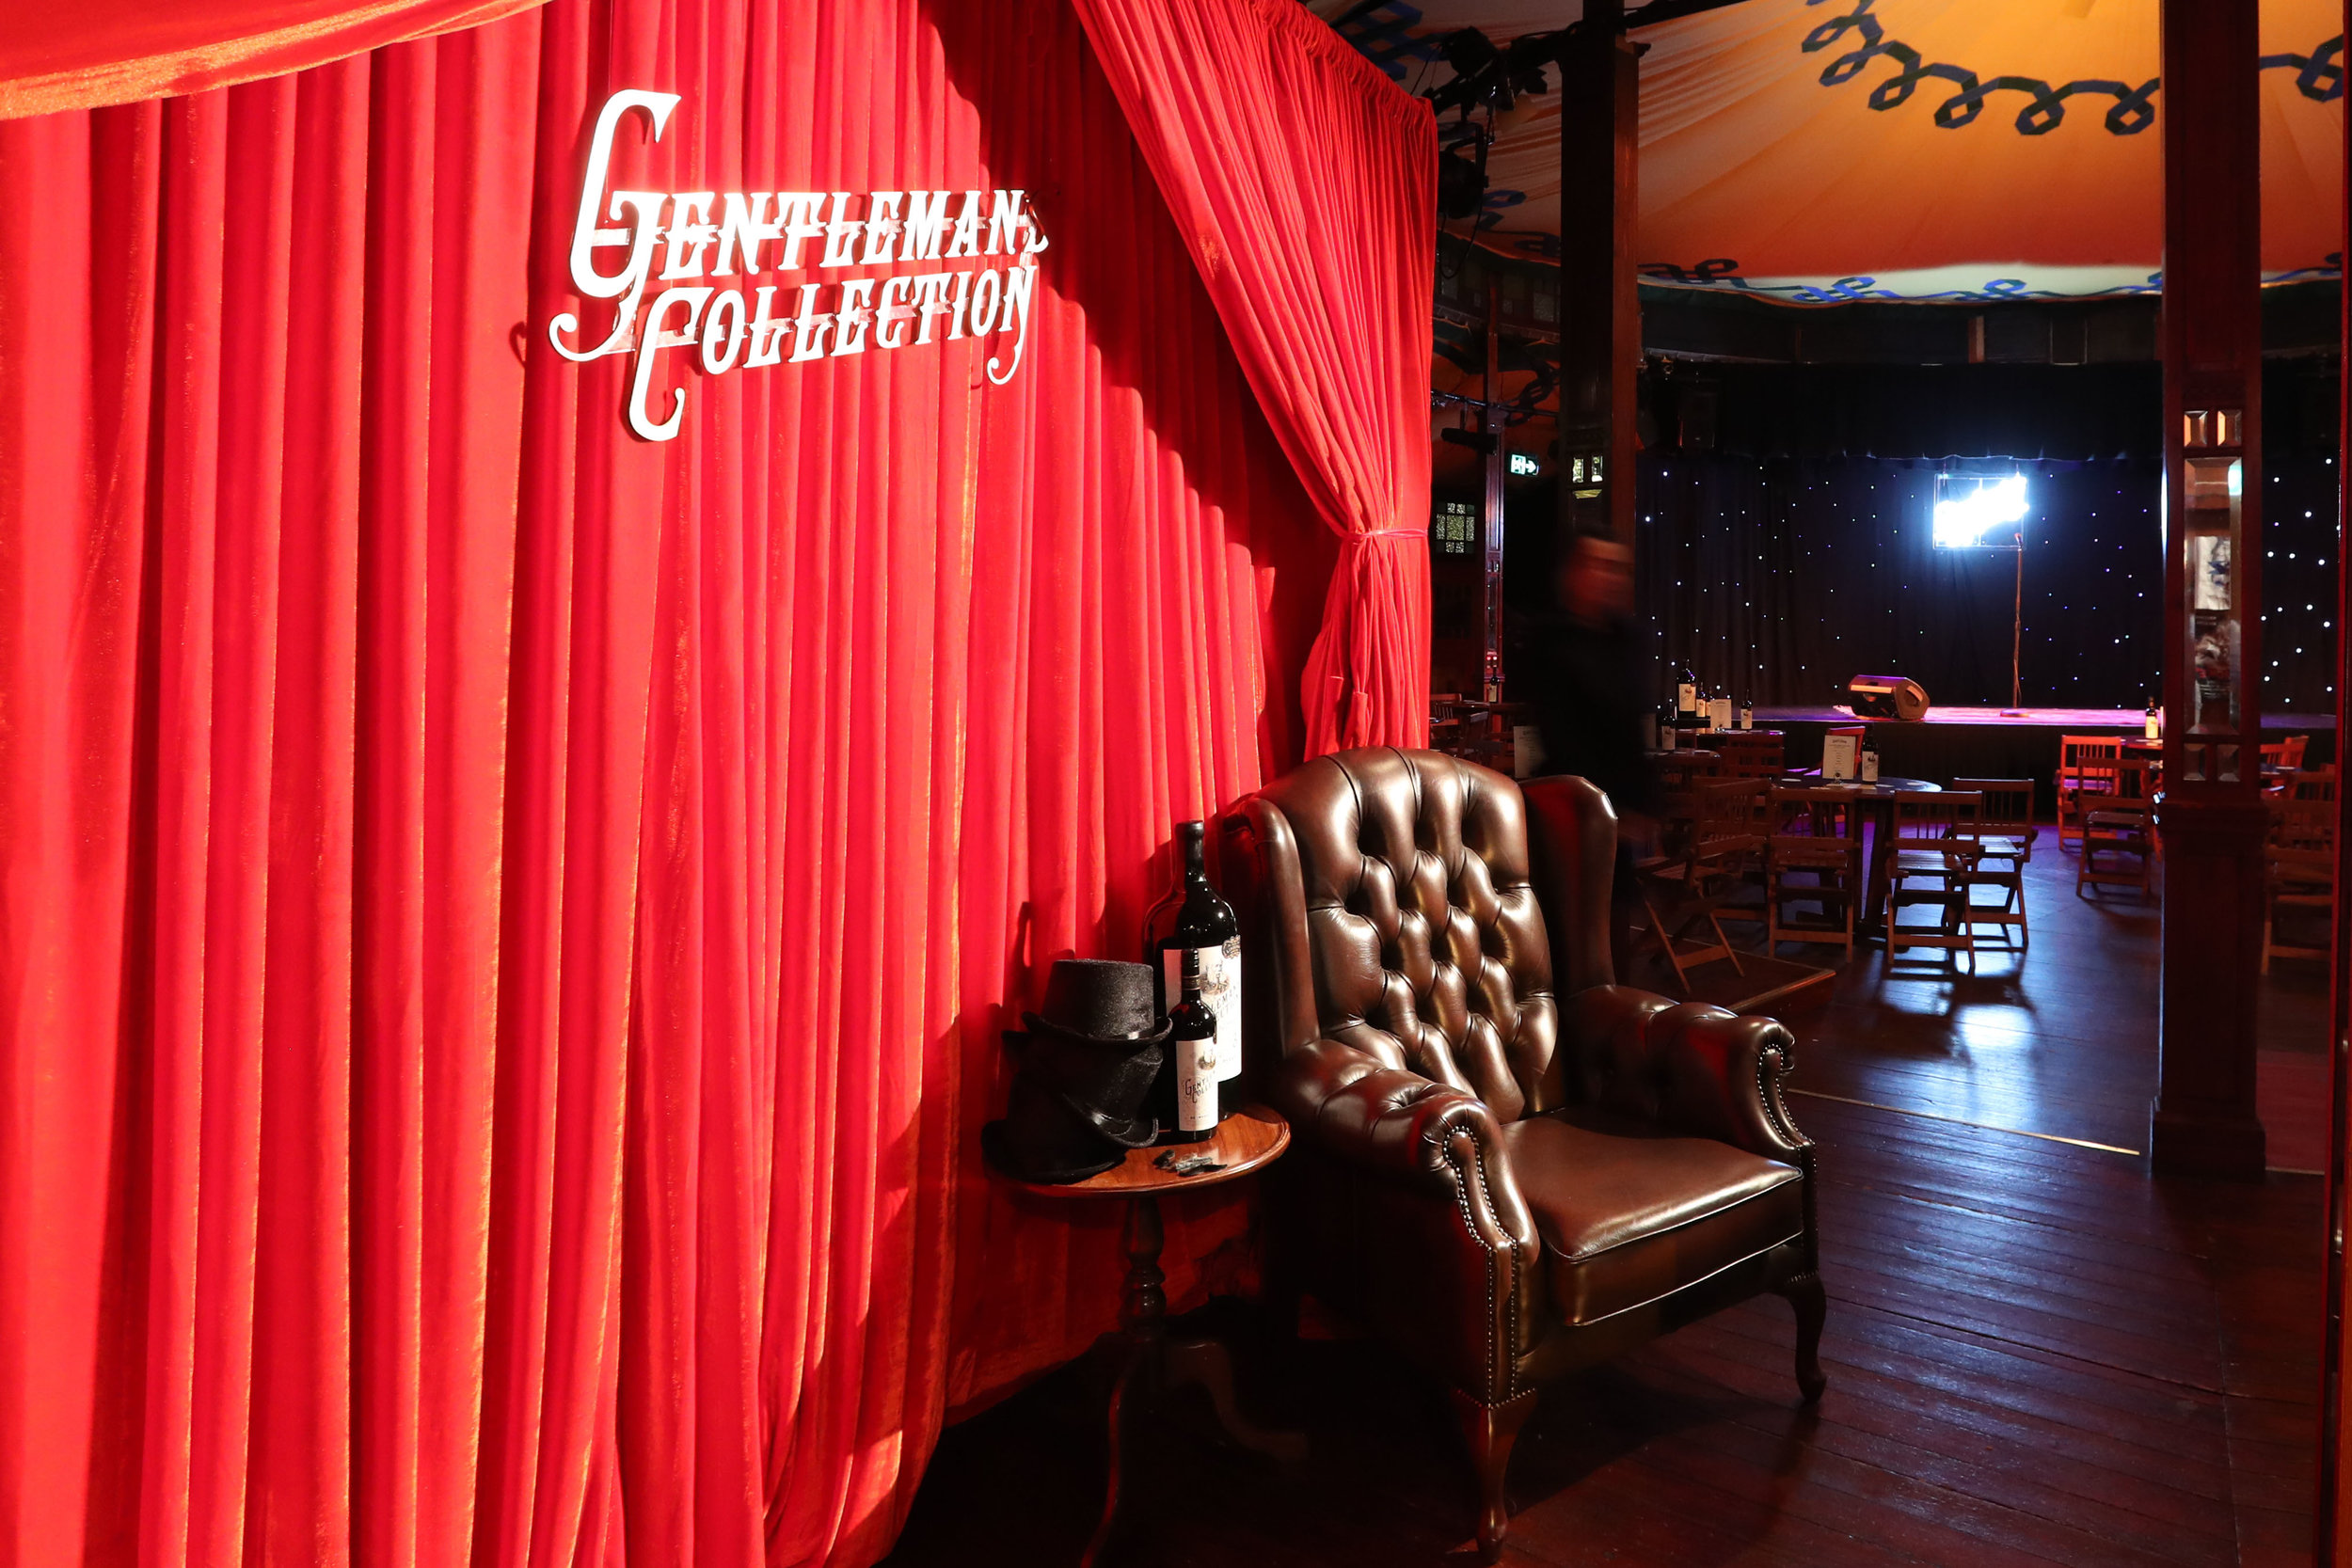 gentlemans-collection-comedy-night-series-4-2017-melba-spiegeltent-3.jpg